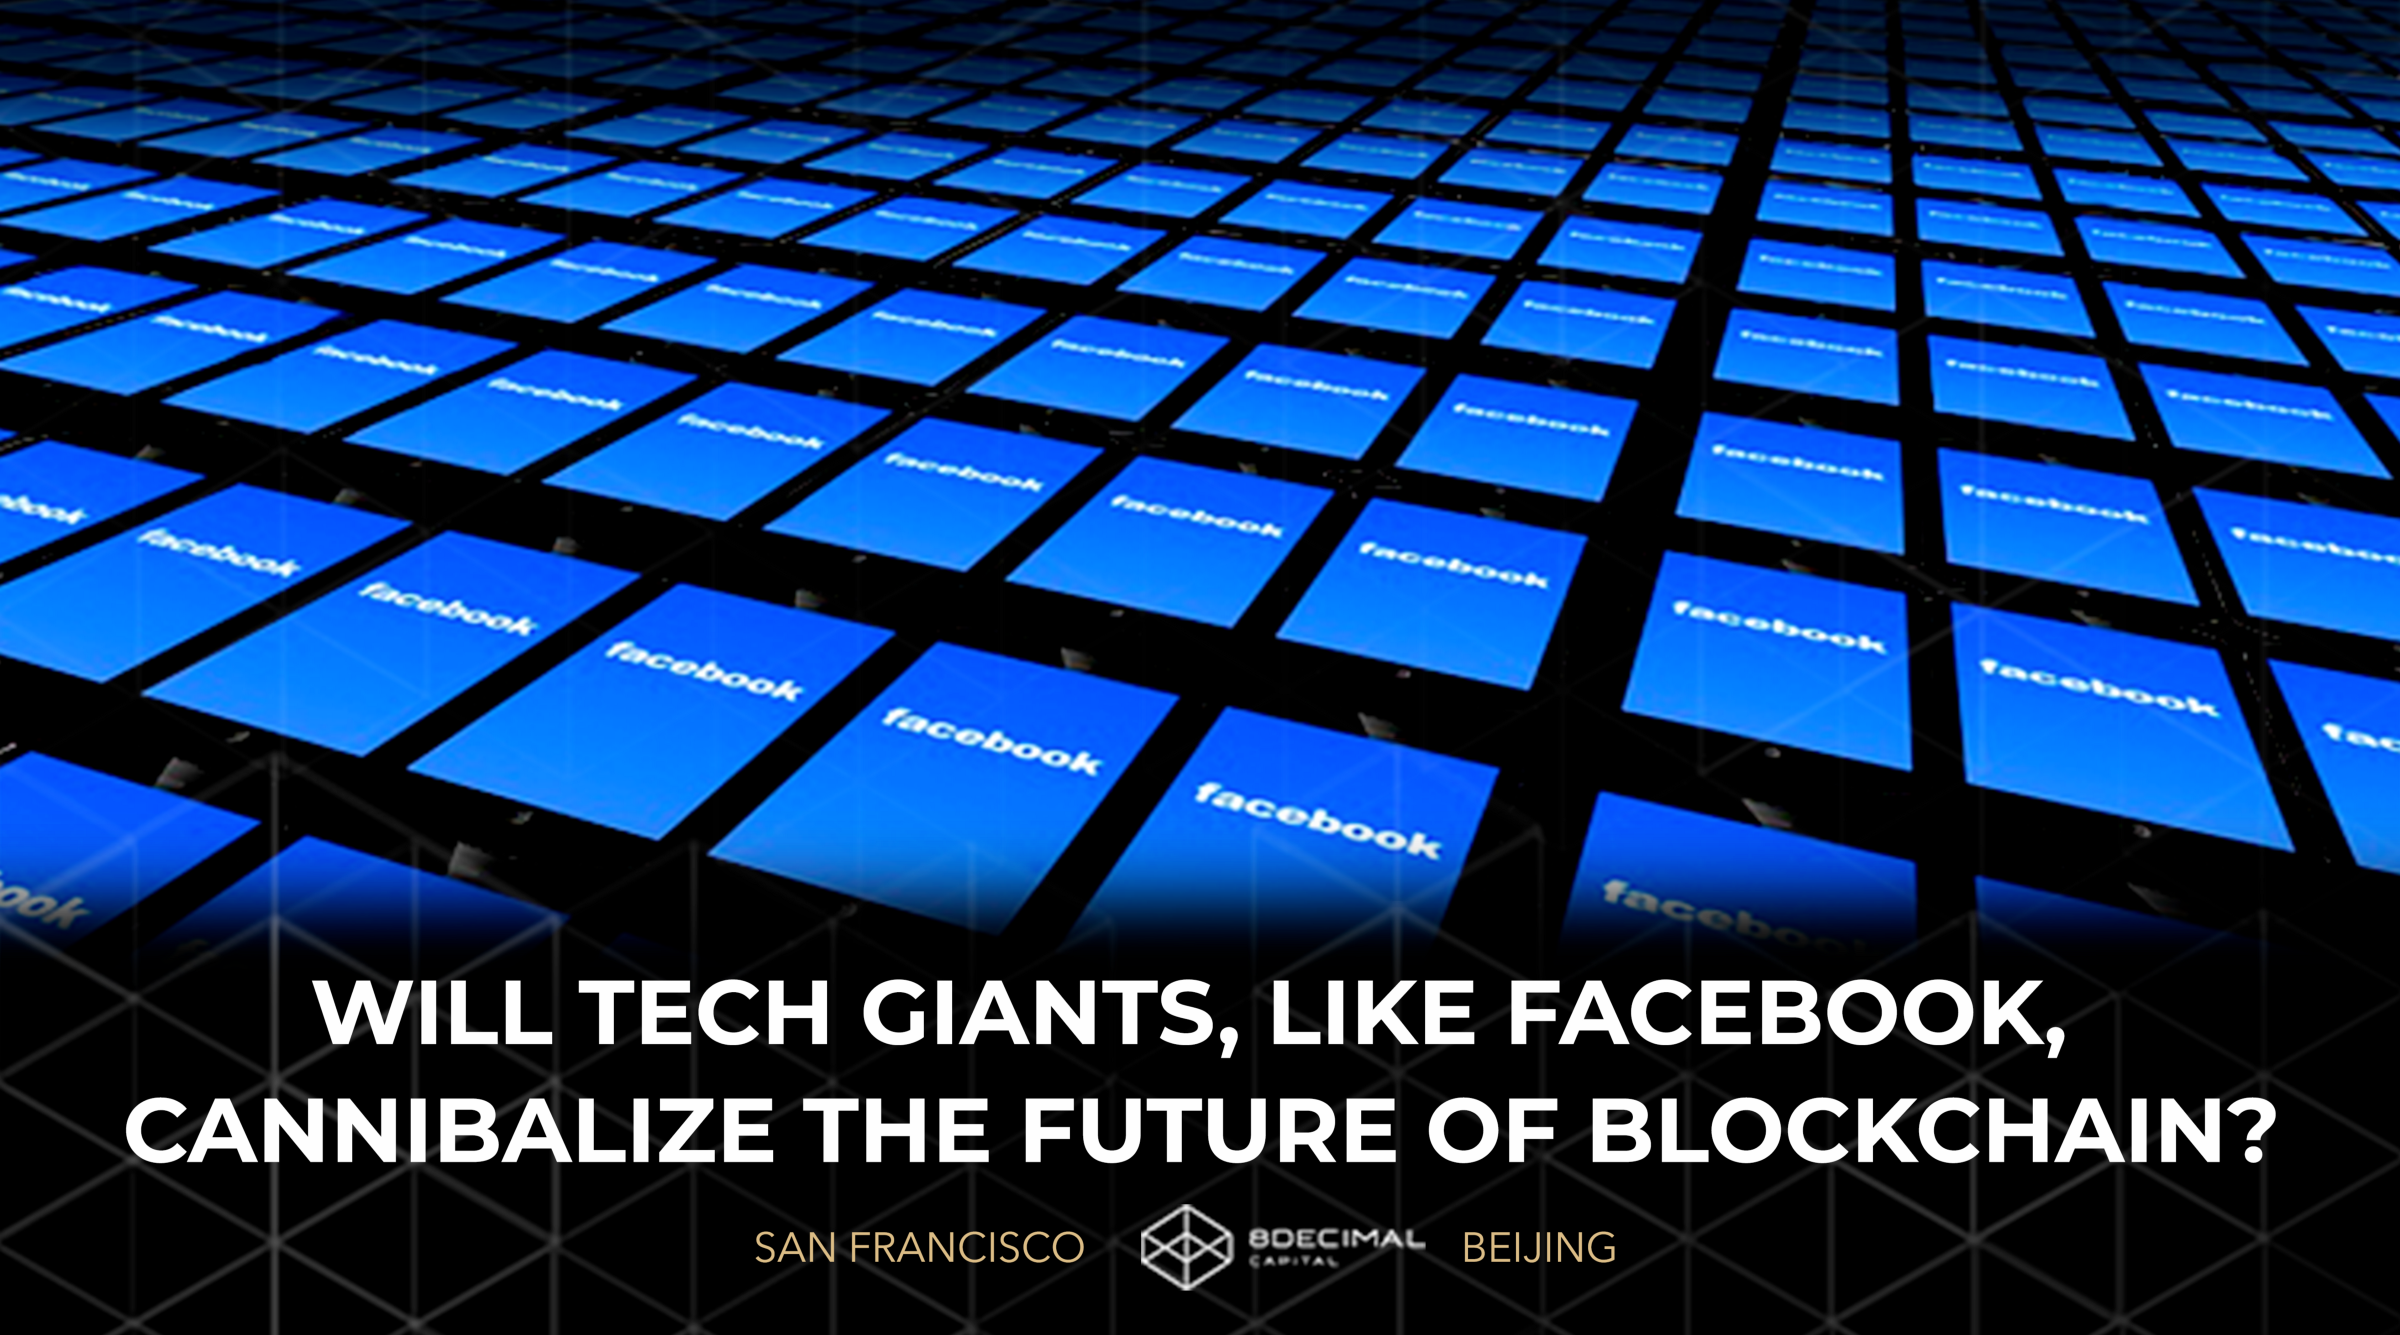 /will-tech-giants-like-facebook-cannibalize-the-future-of-blockchain-36d7eee67cc feature image